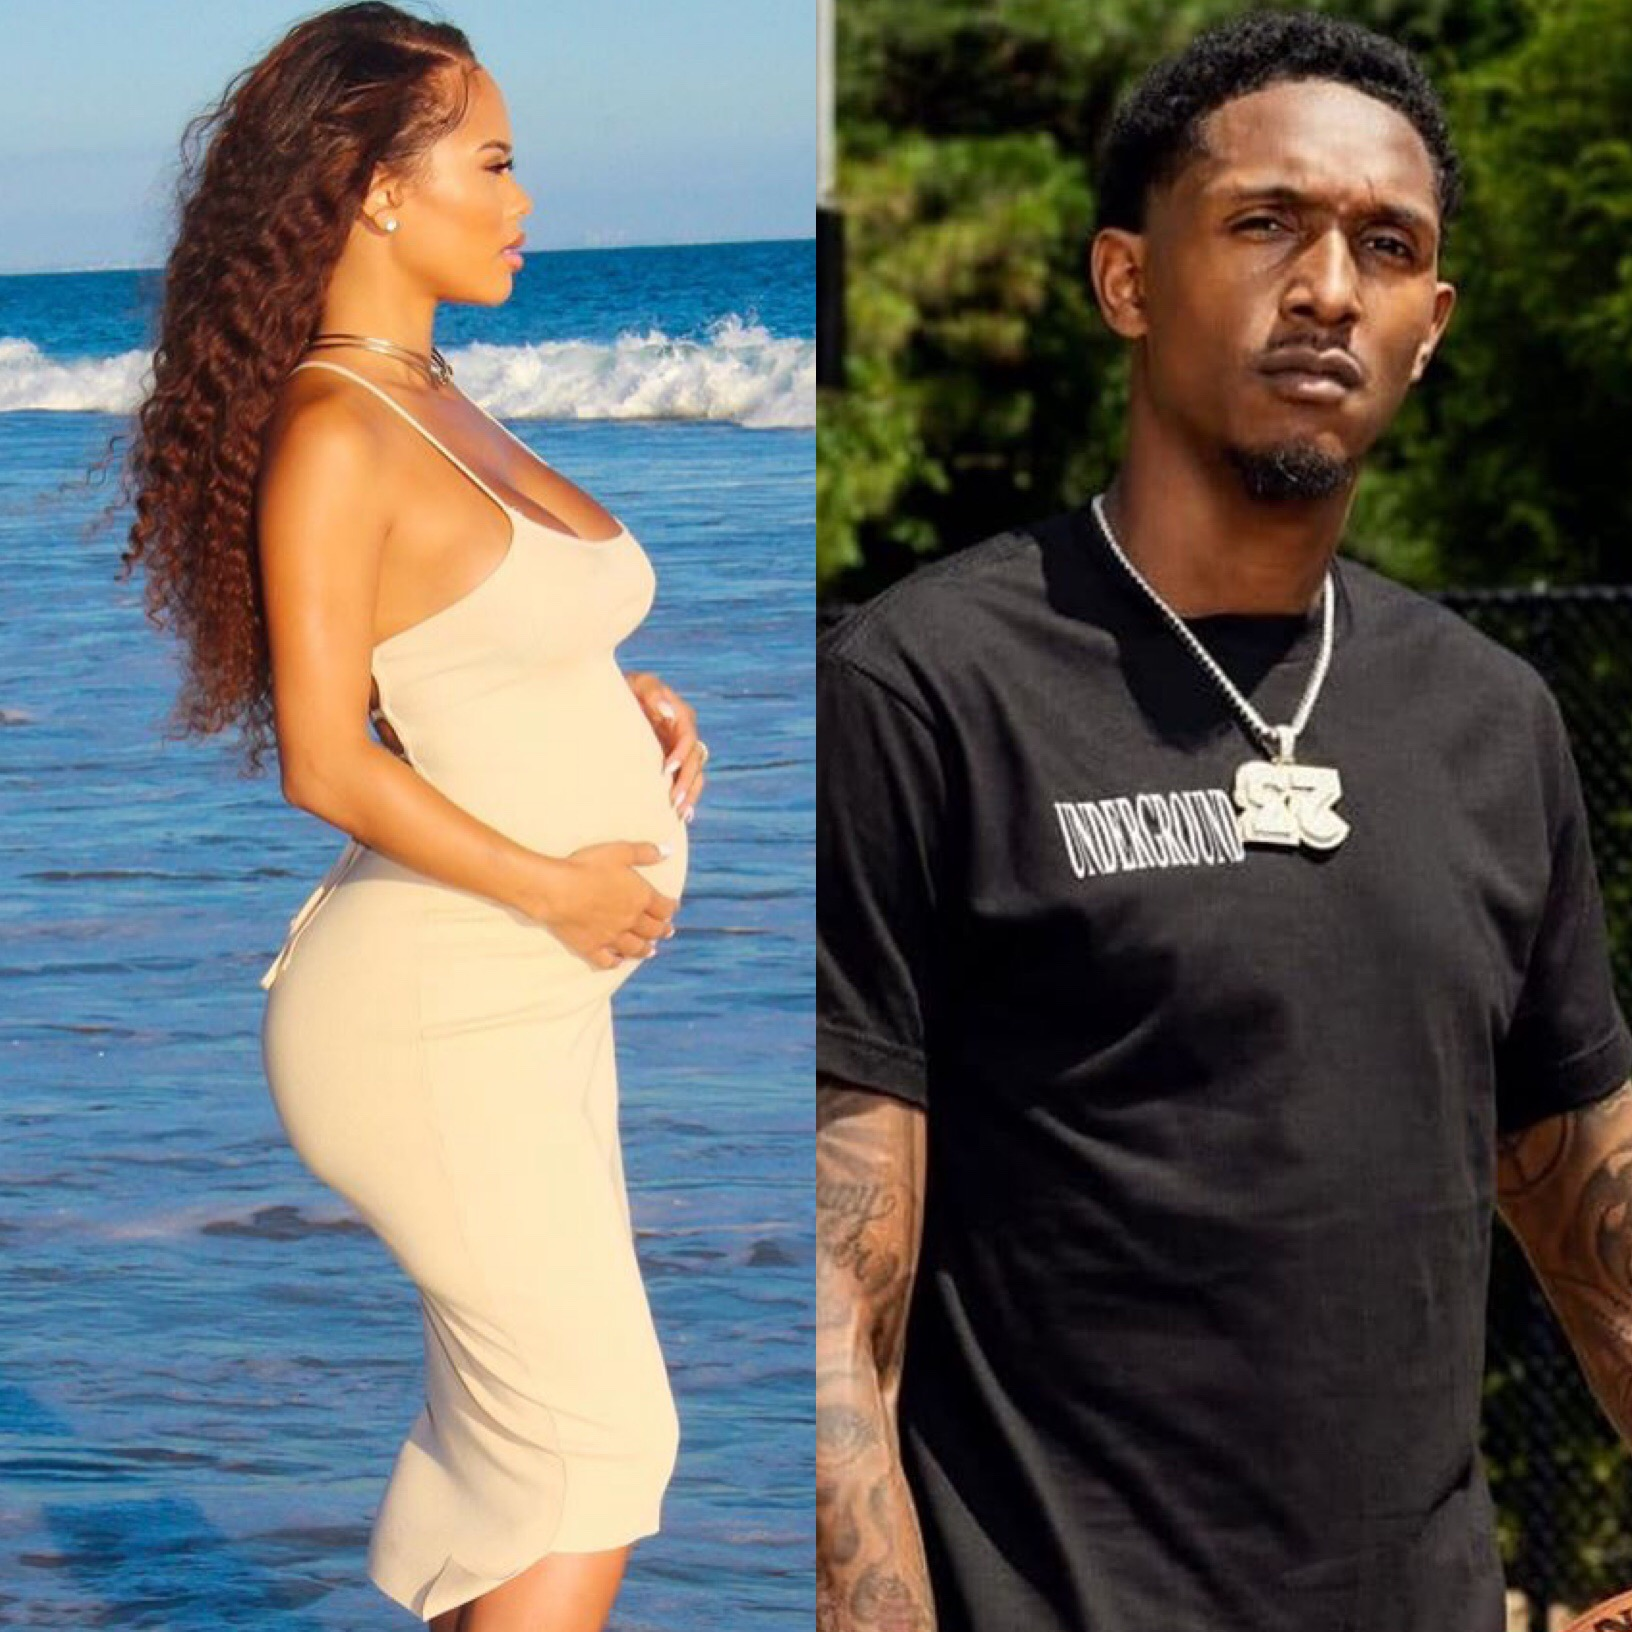 Rece Mitchell Announces She's Pregnant, Is NBA Star Lou Williams The Father? - theJasmineBRAND